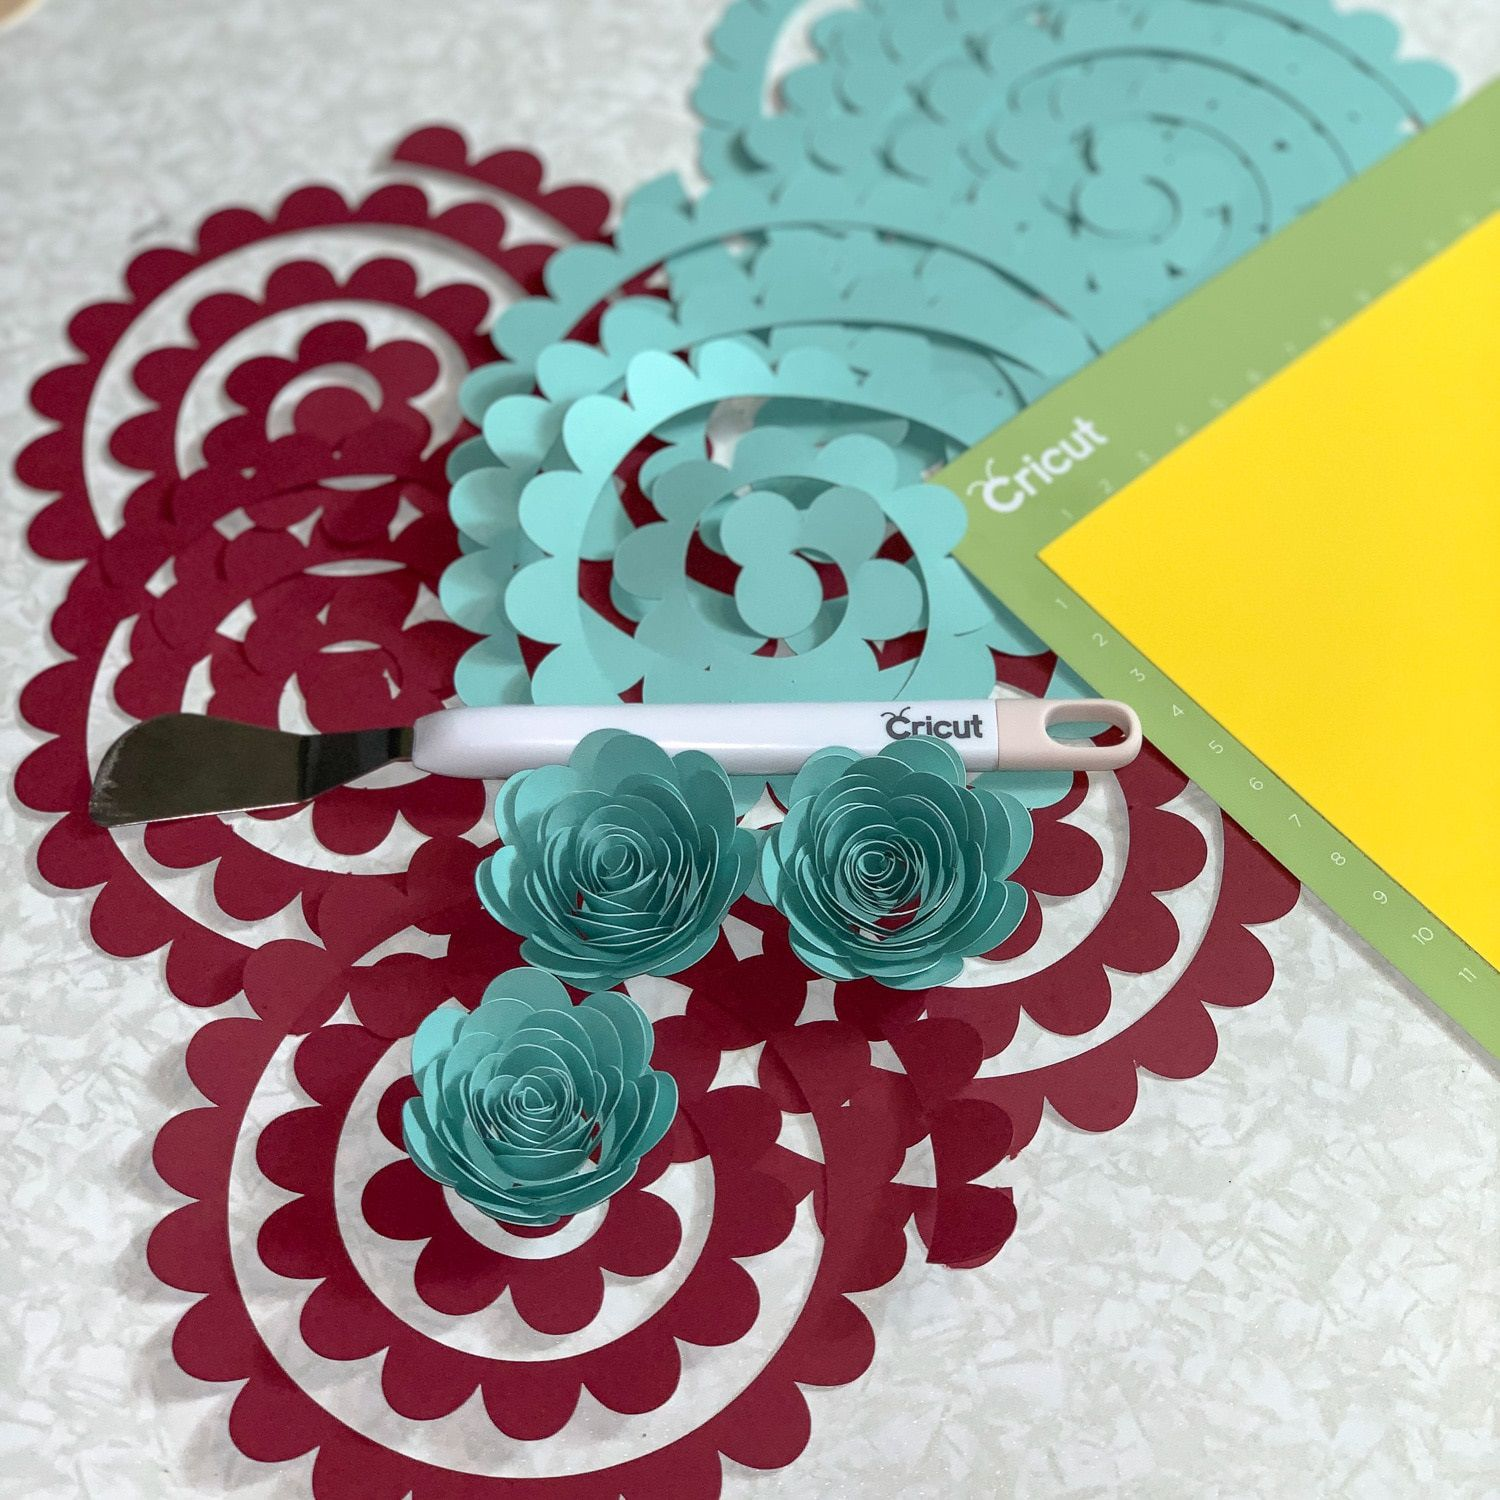 008 Awesome Free Rolled Paper Flower Template For Cricut Example Full